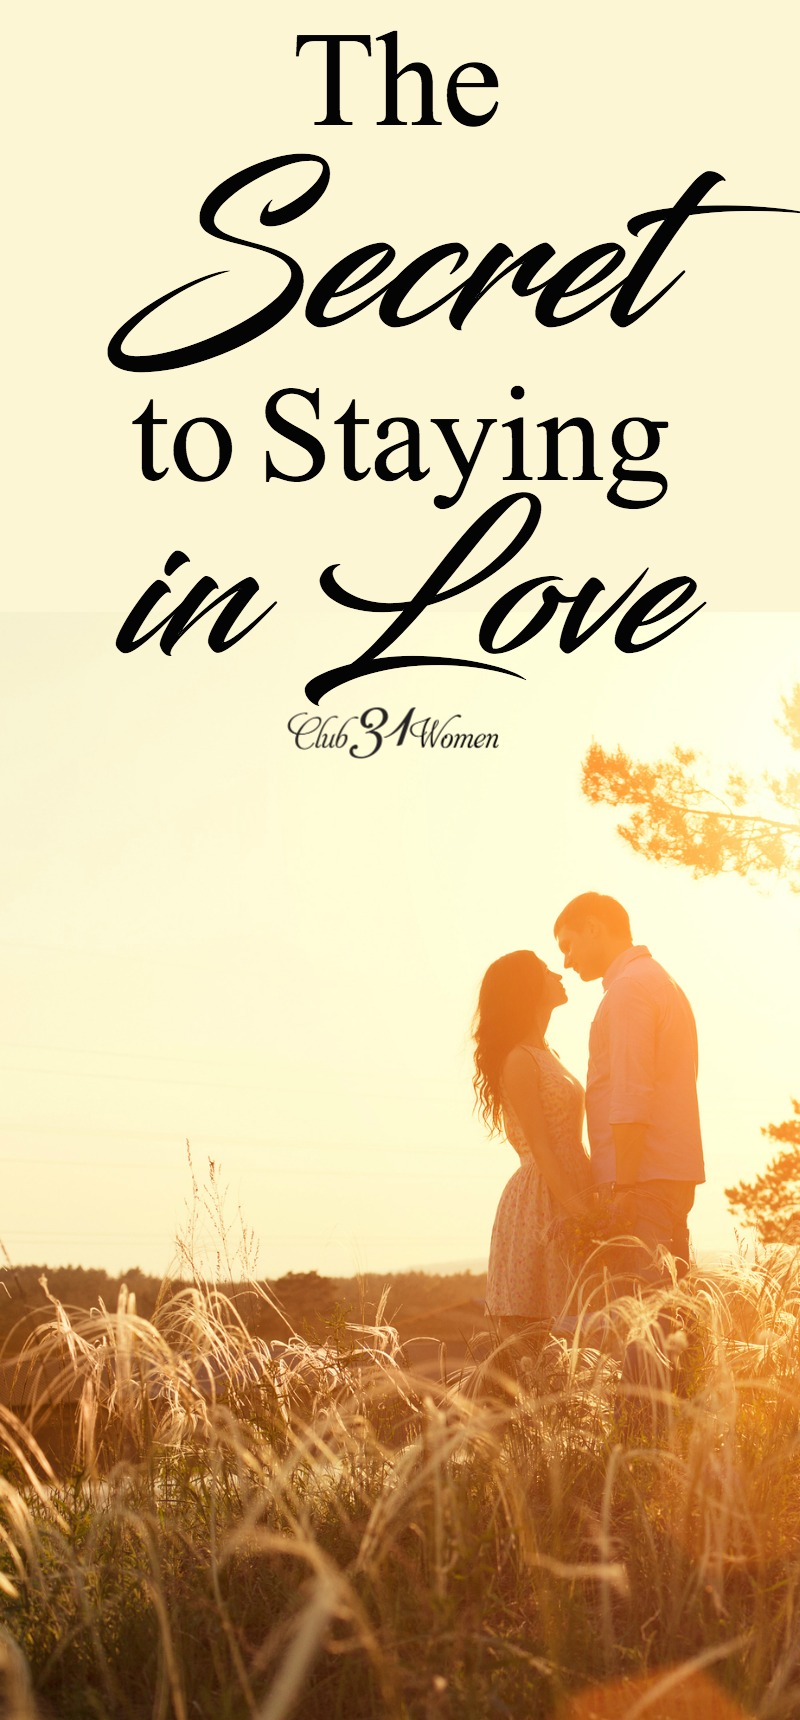 What is the secret to staying in love? Is it what I'm getting out of the relationship that fuels it? Find out how you can keep that spark alive in your marriage. via @Club31Women